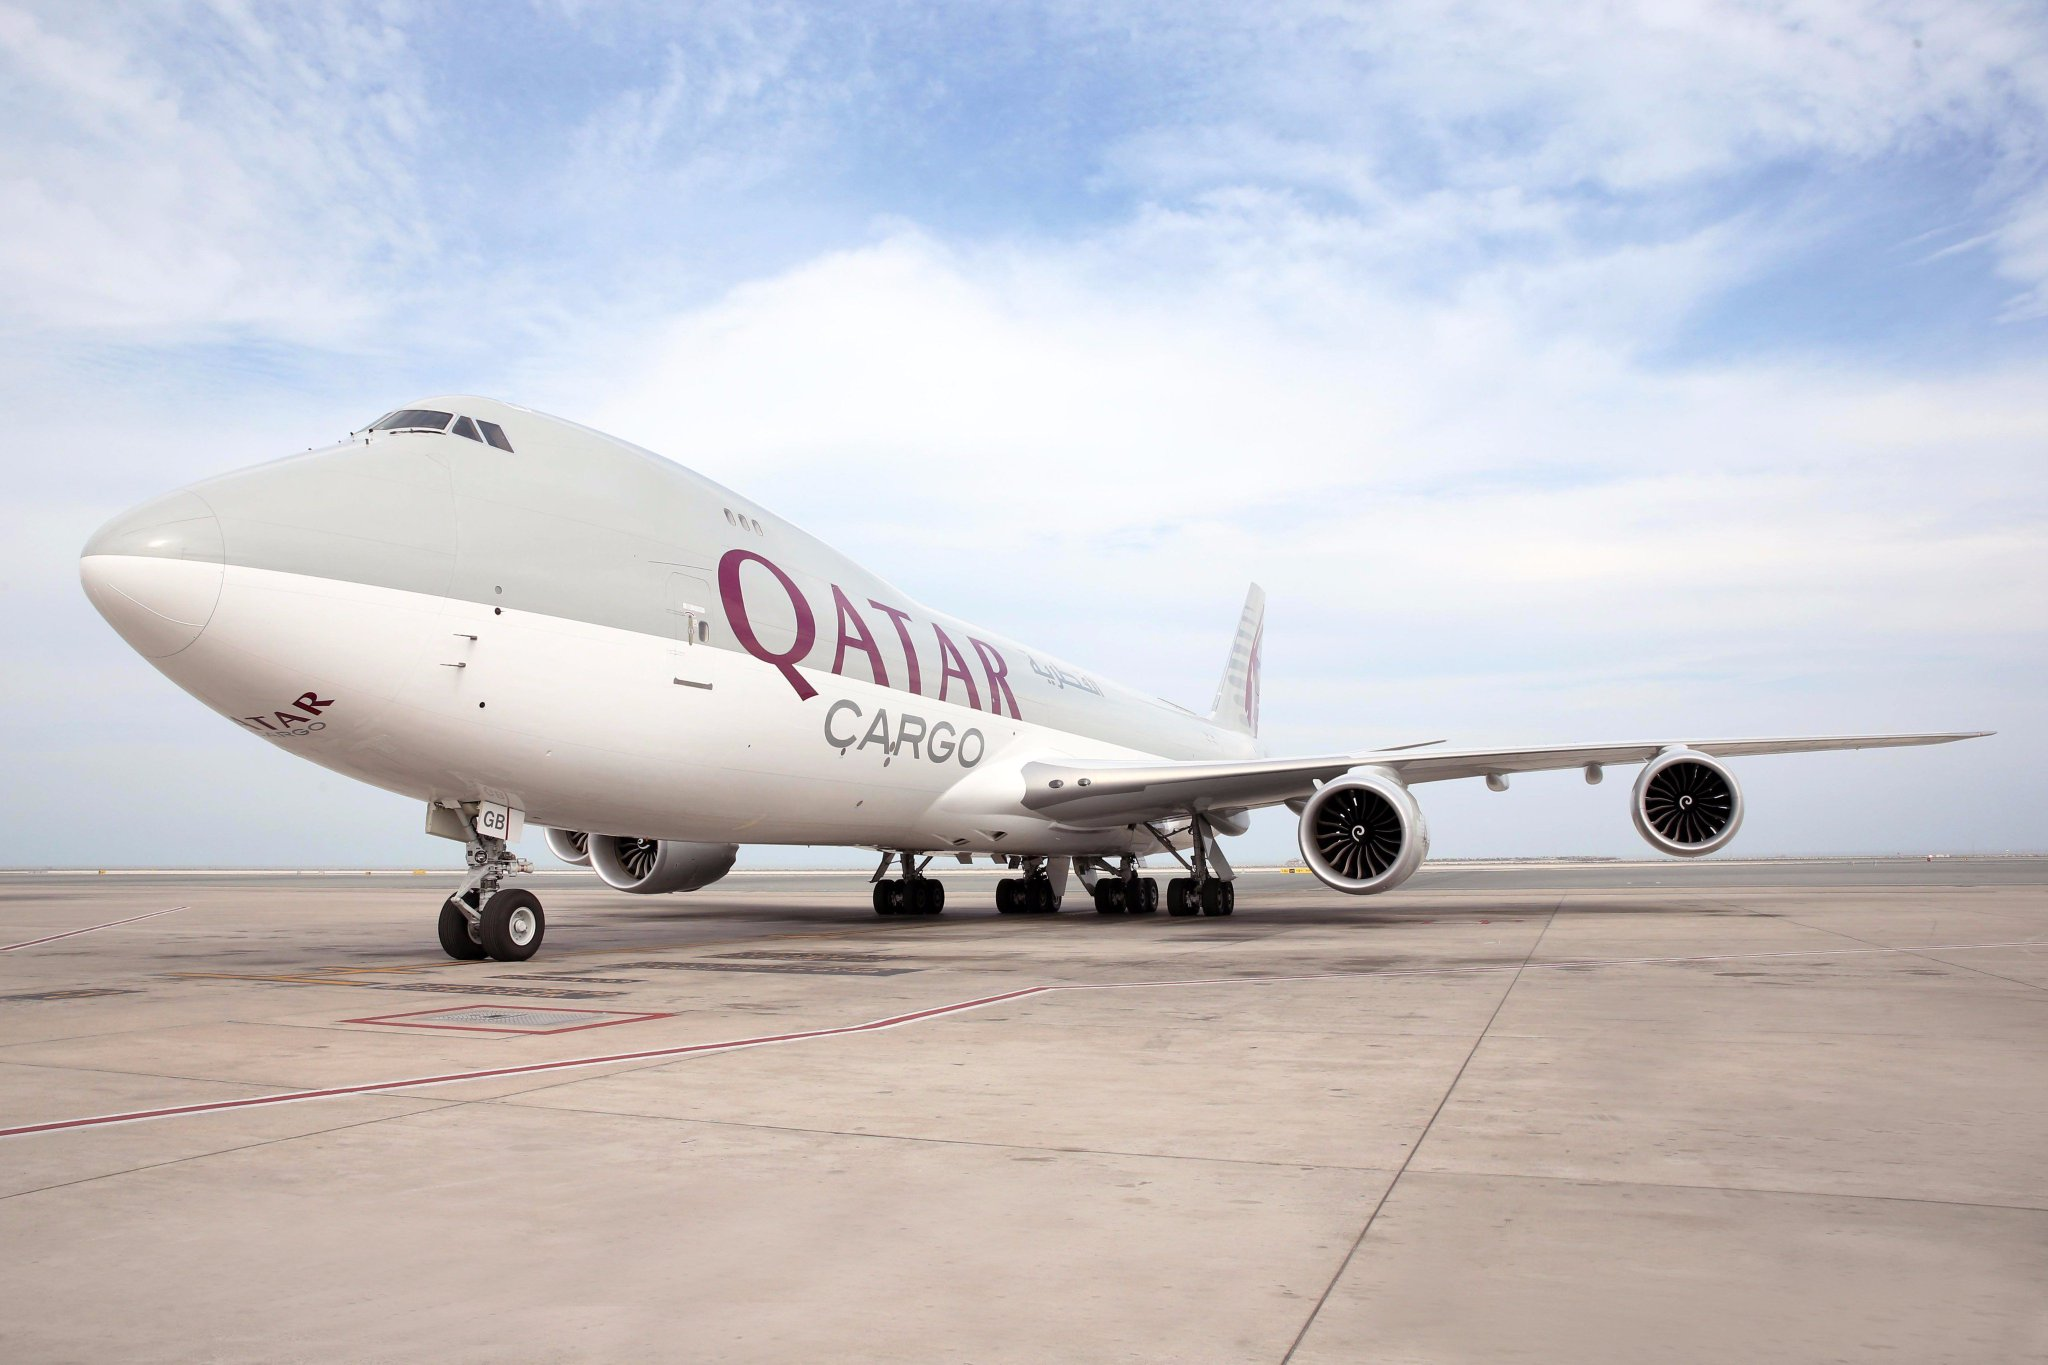 The Queen of the Skies: The Boeing 747-8 Freighter, one of the longest cargo freighters in the world. #Boeing747 #QatarAirways https://t.co/dwfZl531xb